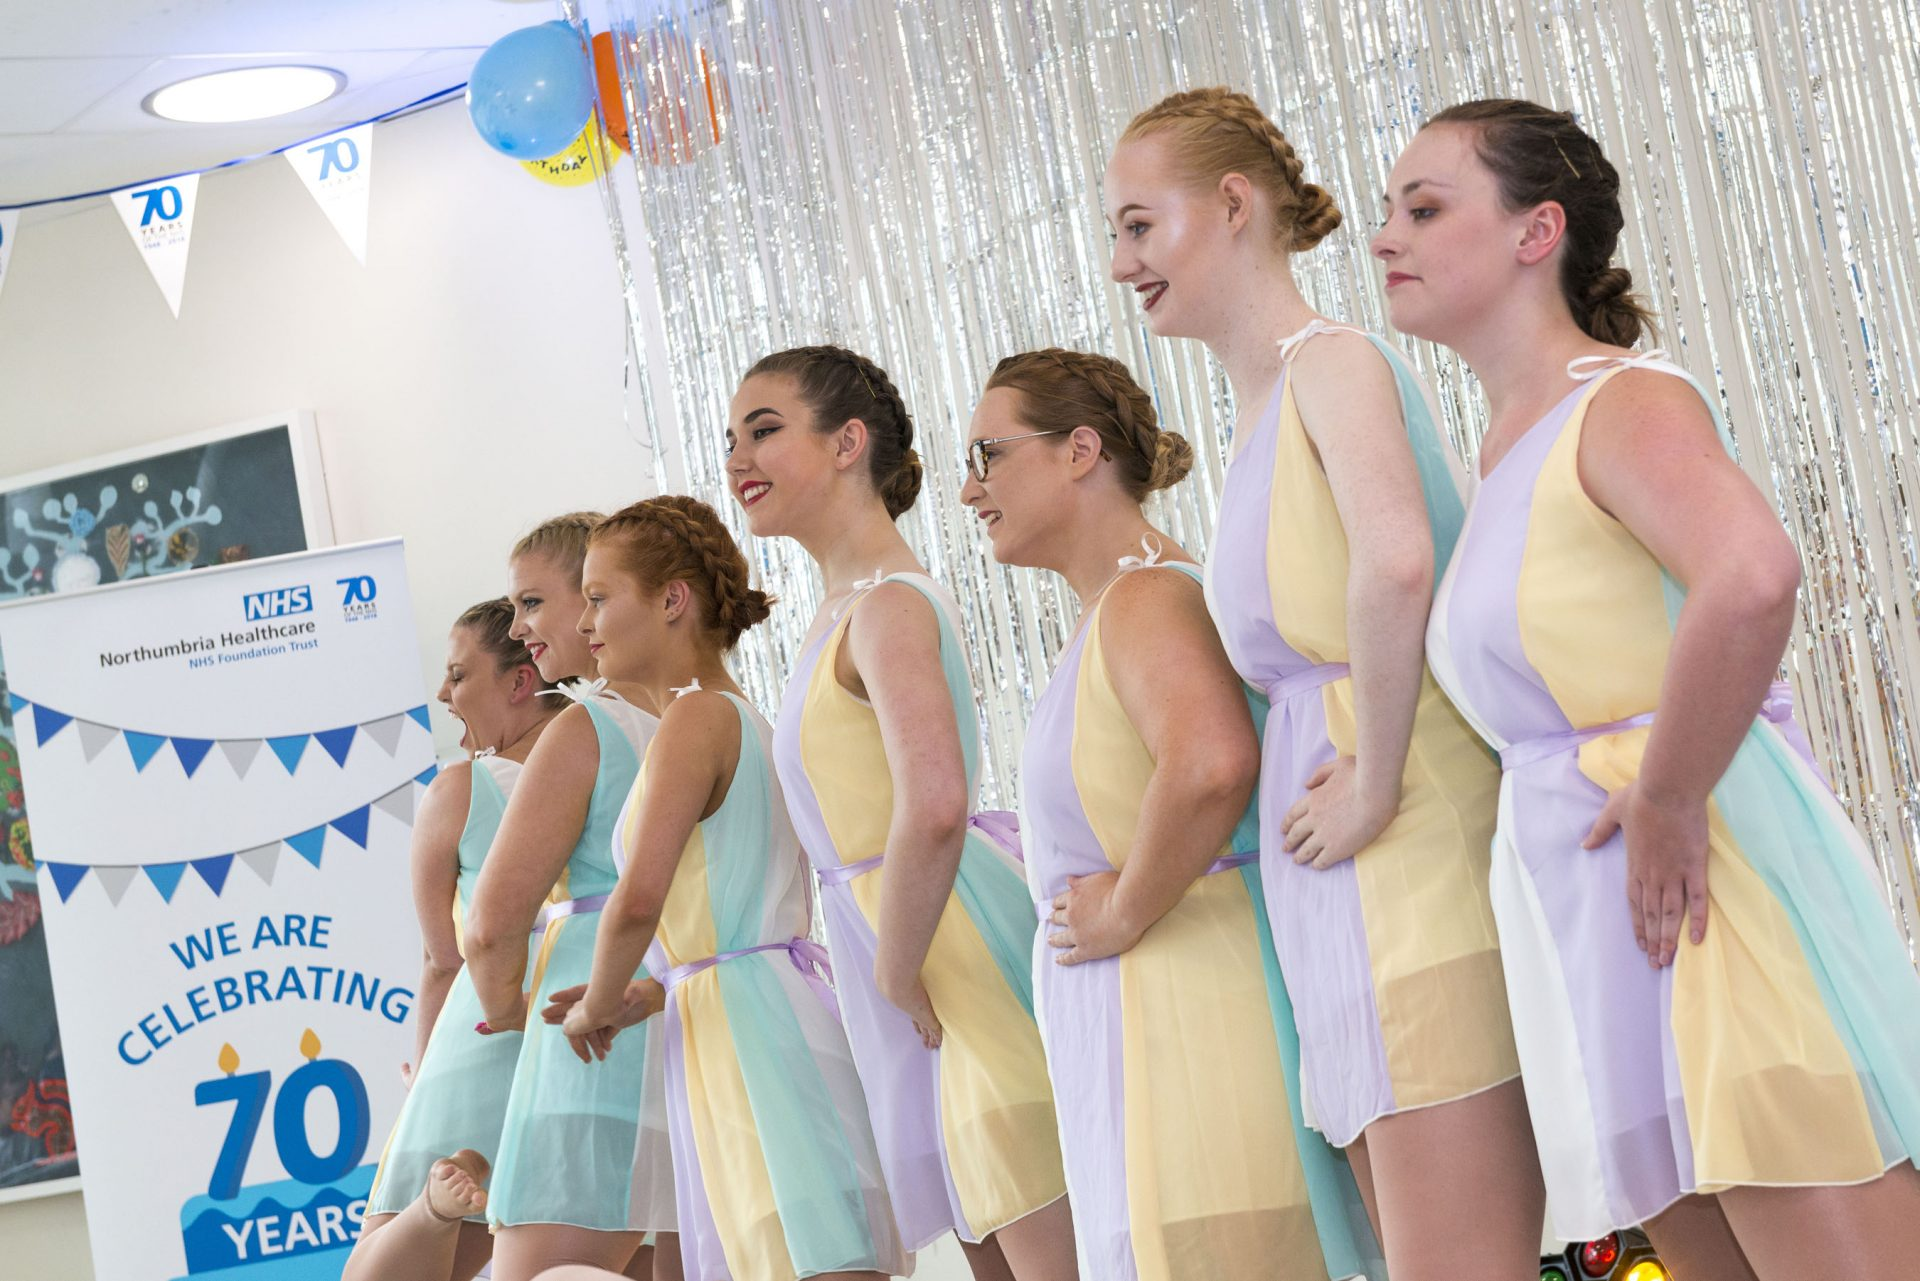 The Stephanie Morgan Dance School perform at the tea dance at The Northumbria Hospital to celebrate the 70th birthday of the NHS, July 2018